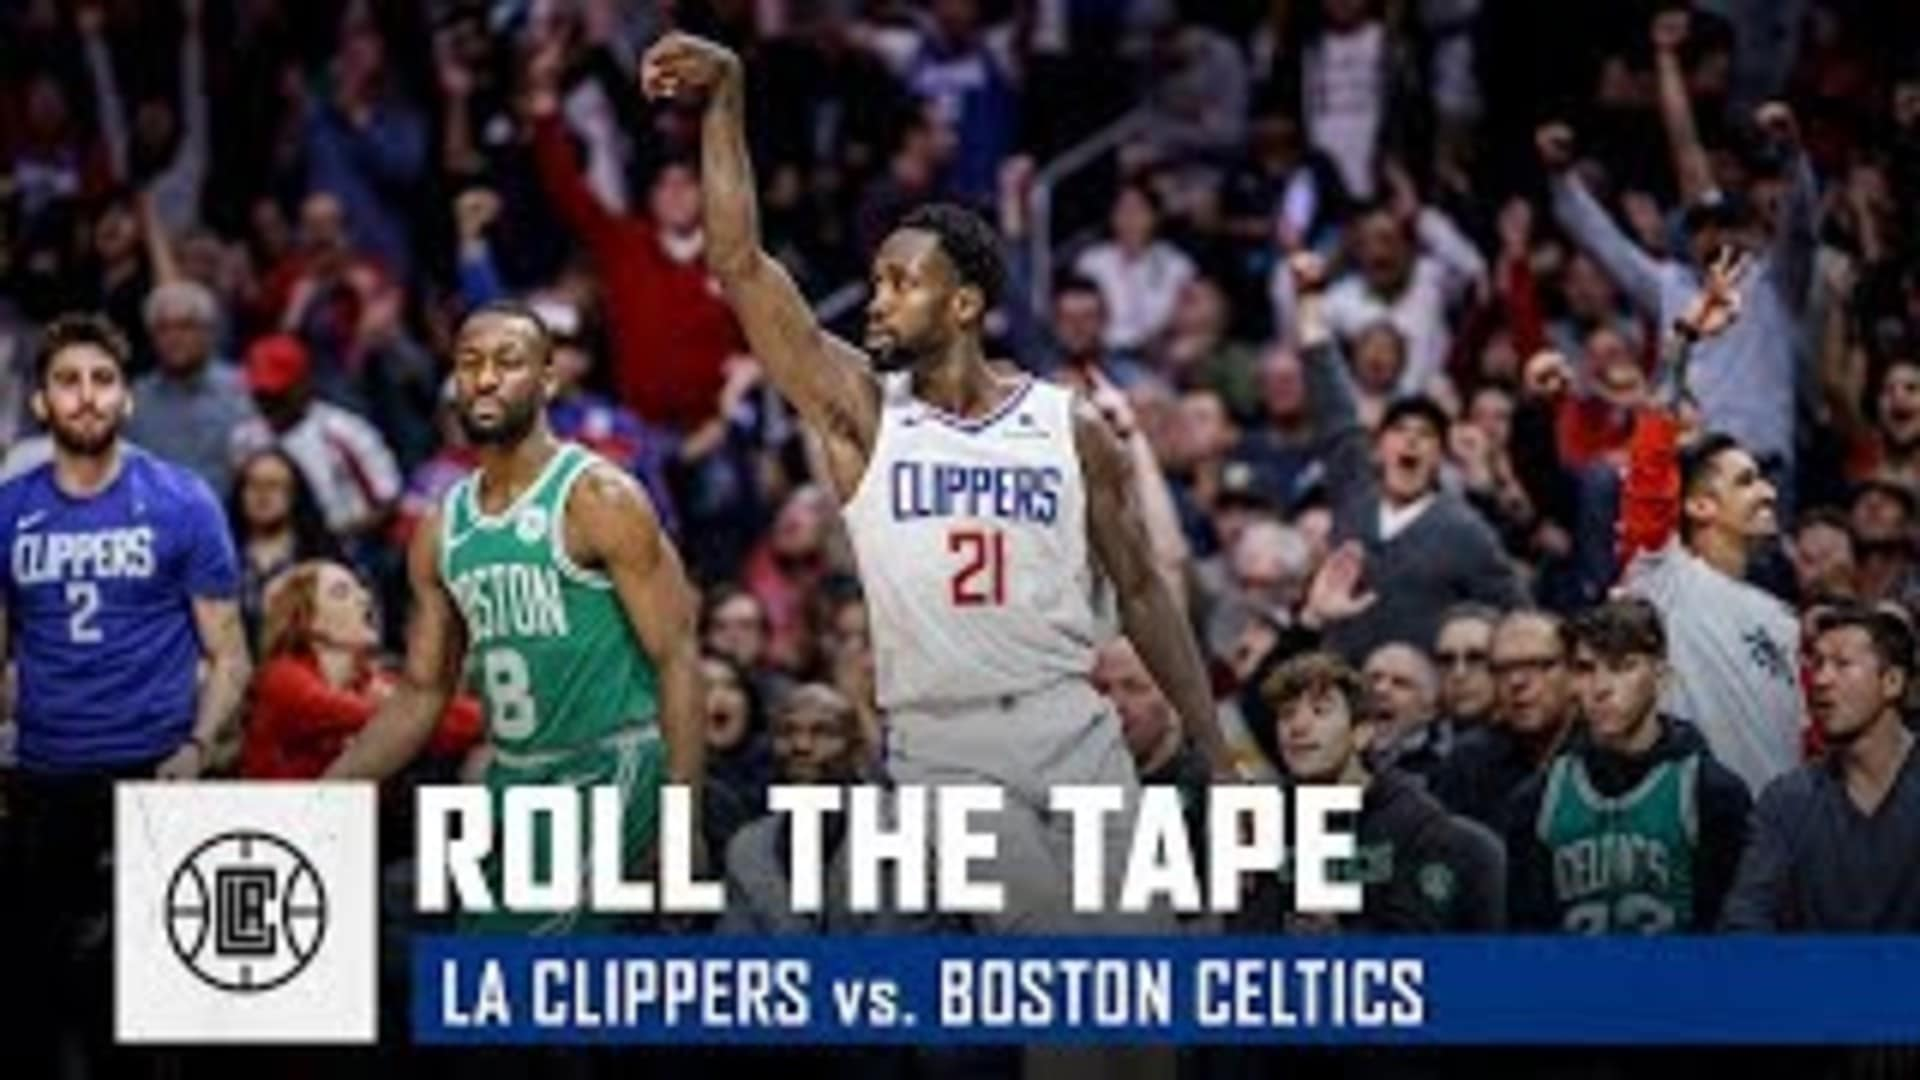 Scenes from the Clippers' Overtime Thriller vs. Boston | Roll the Tape